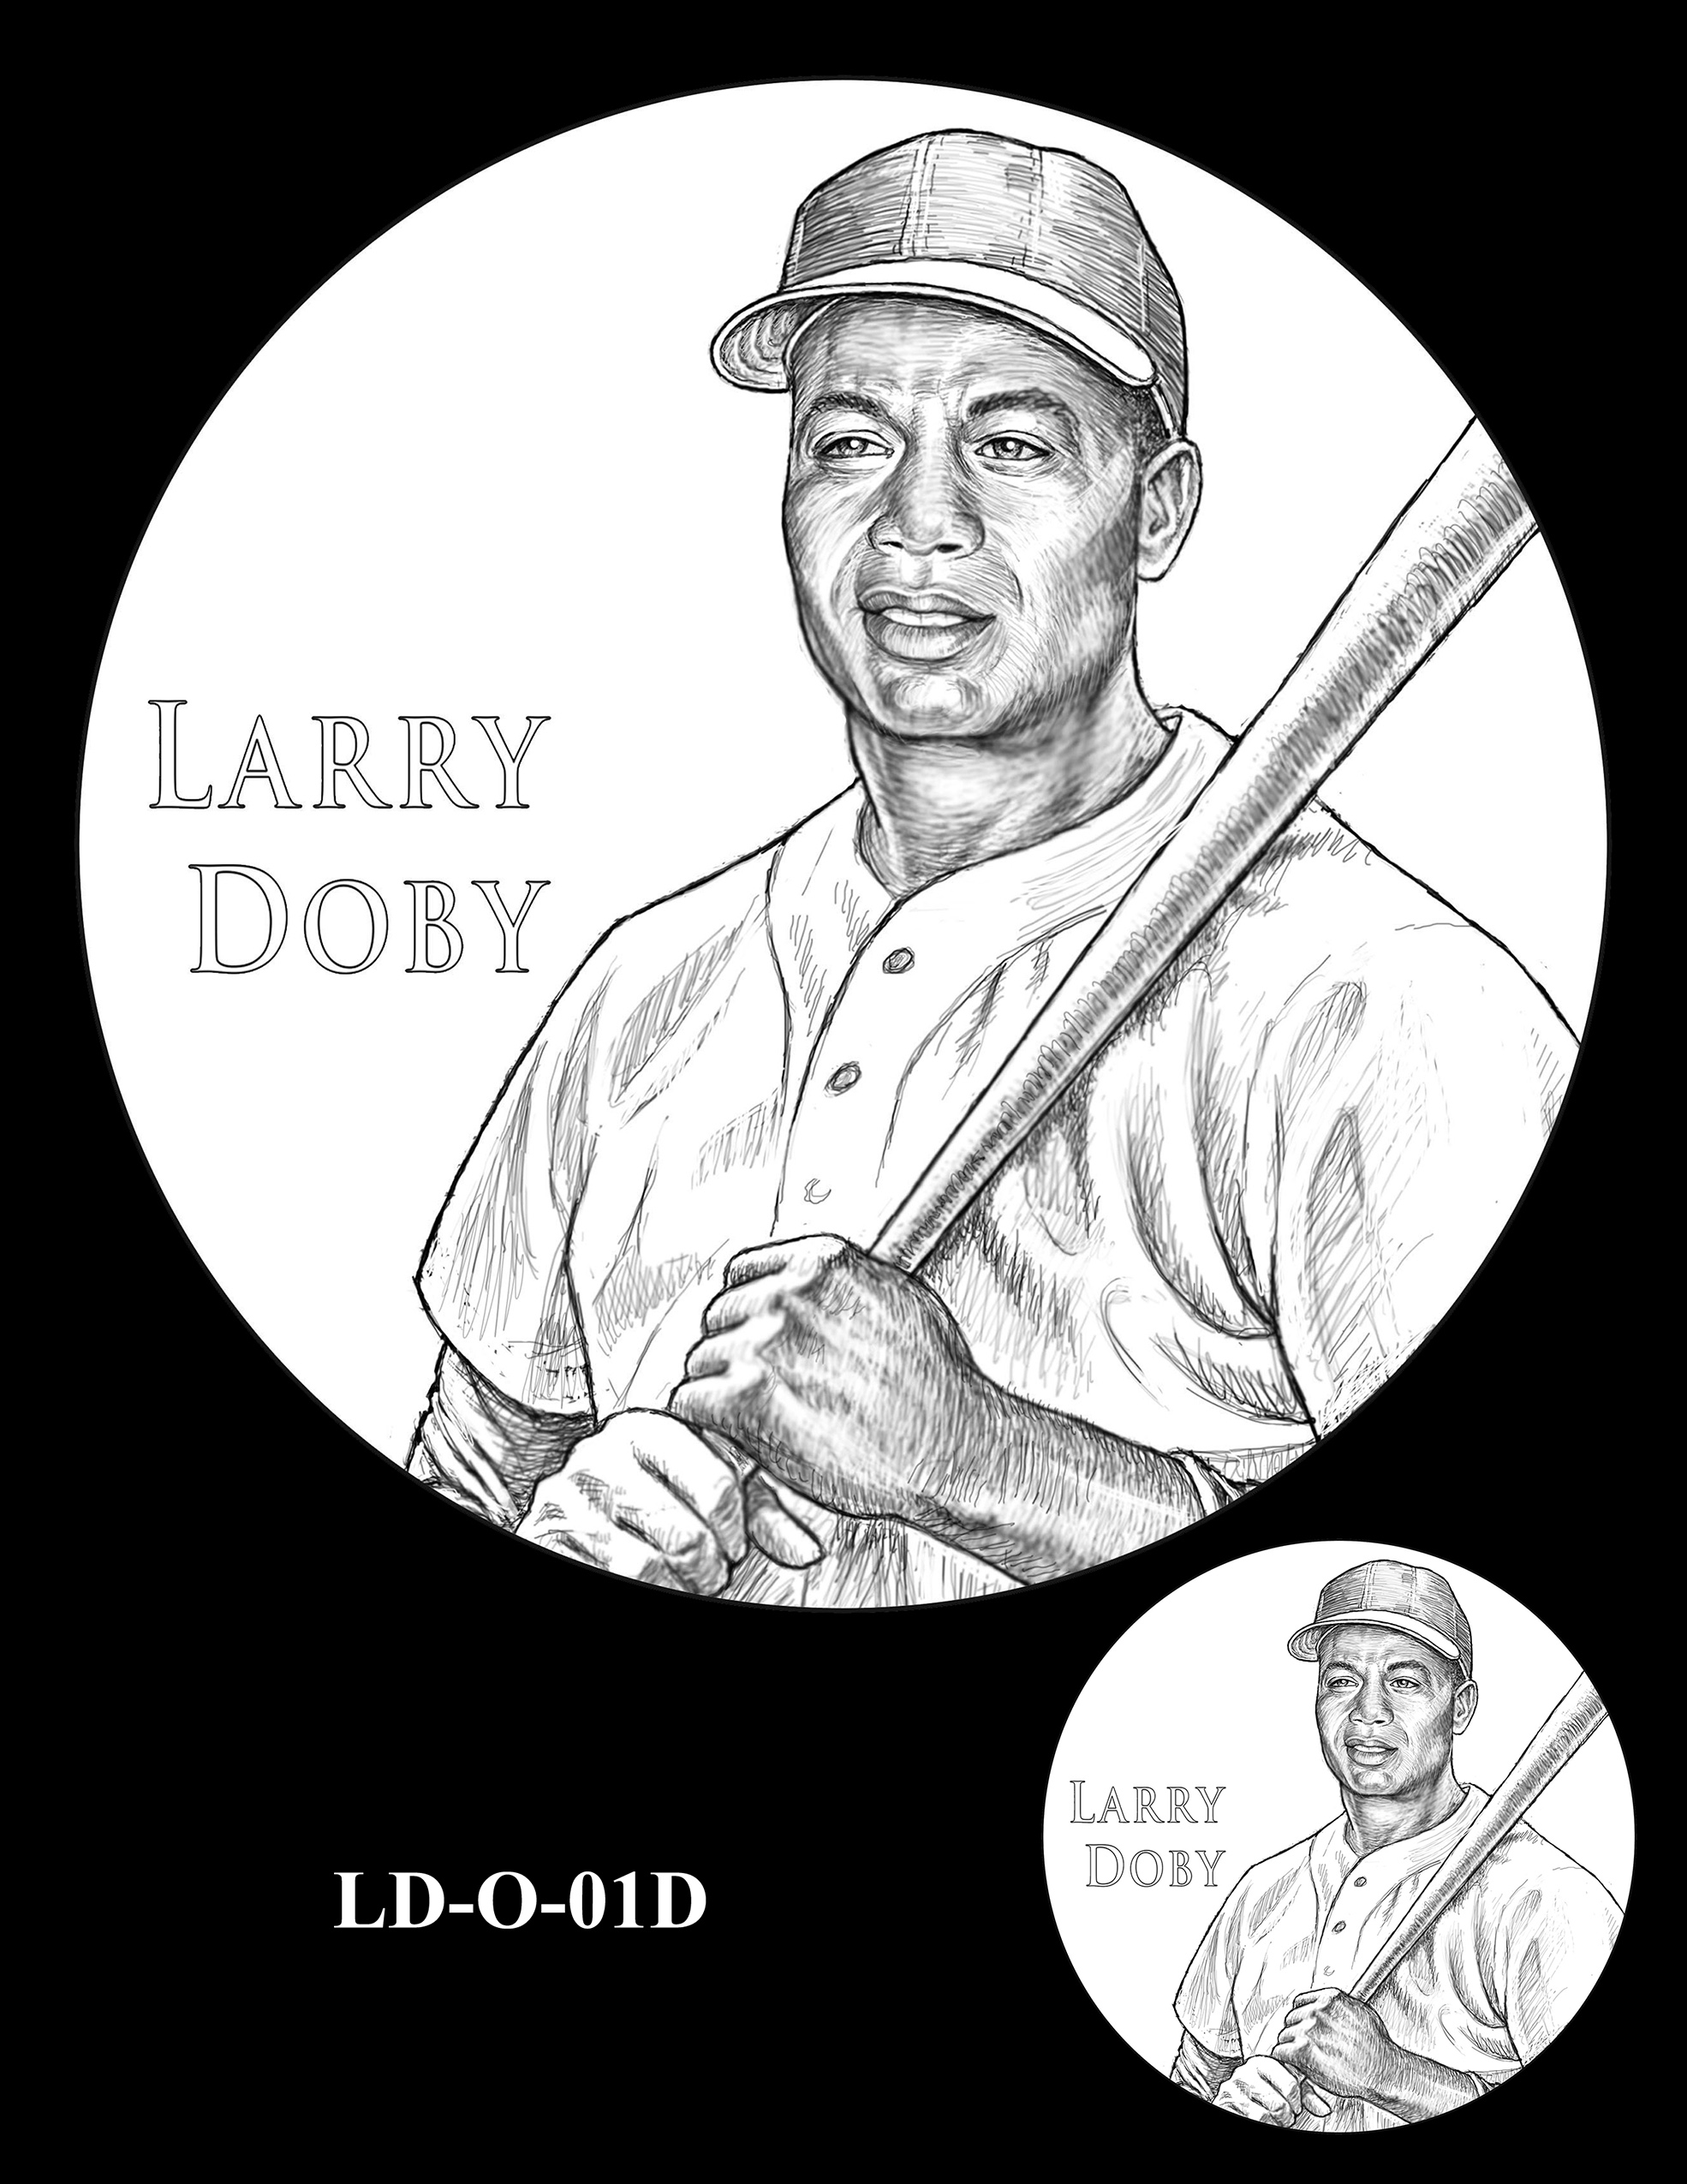 LD-O-01D -- Larry Doby Congressional Gold Medal